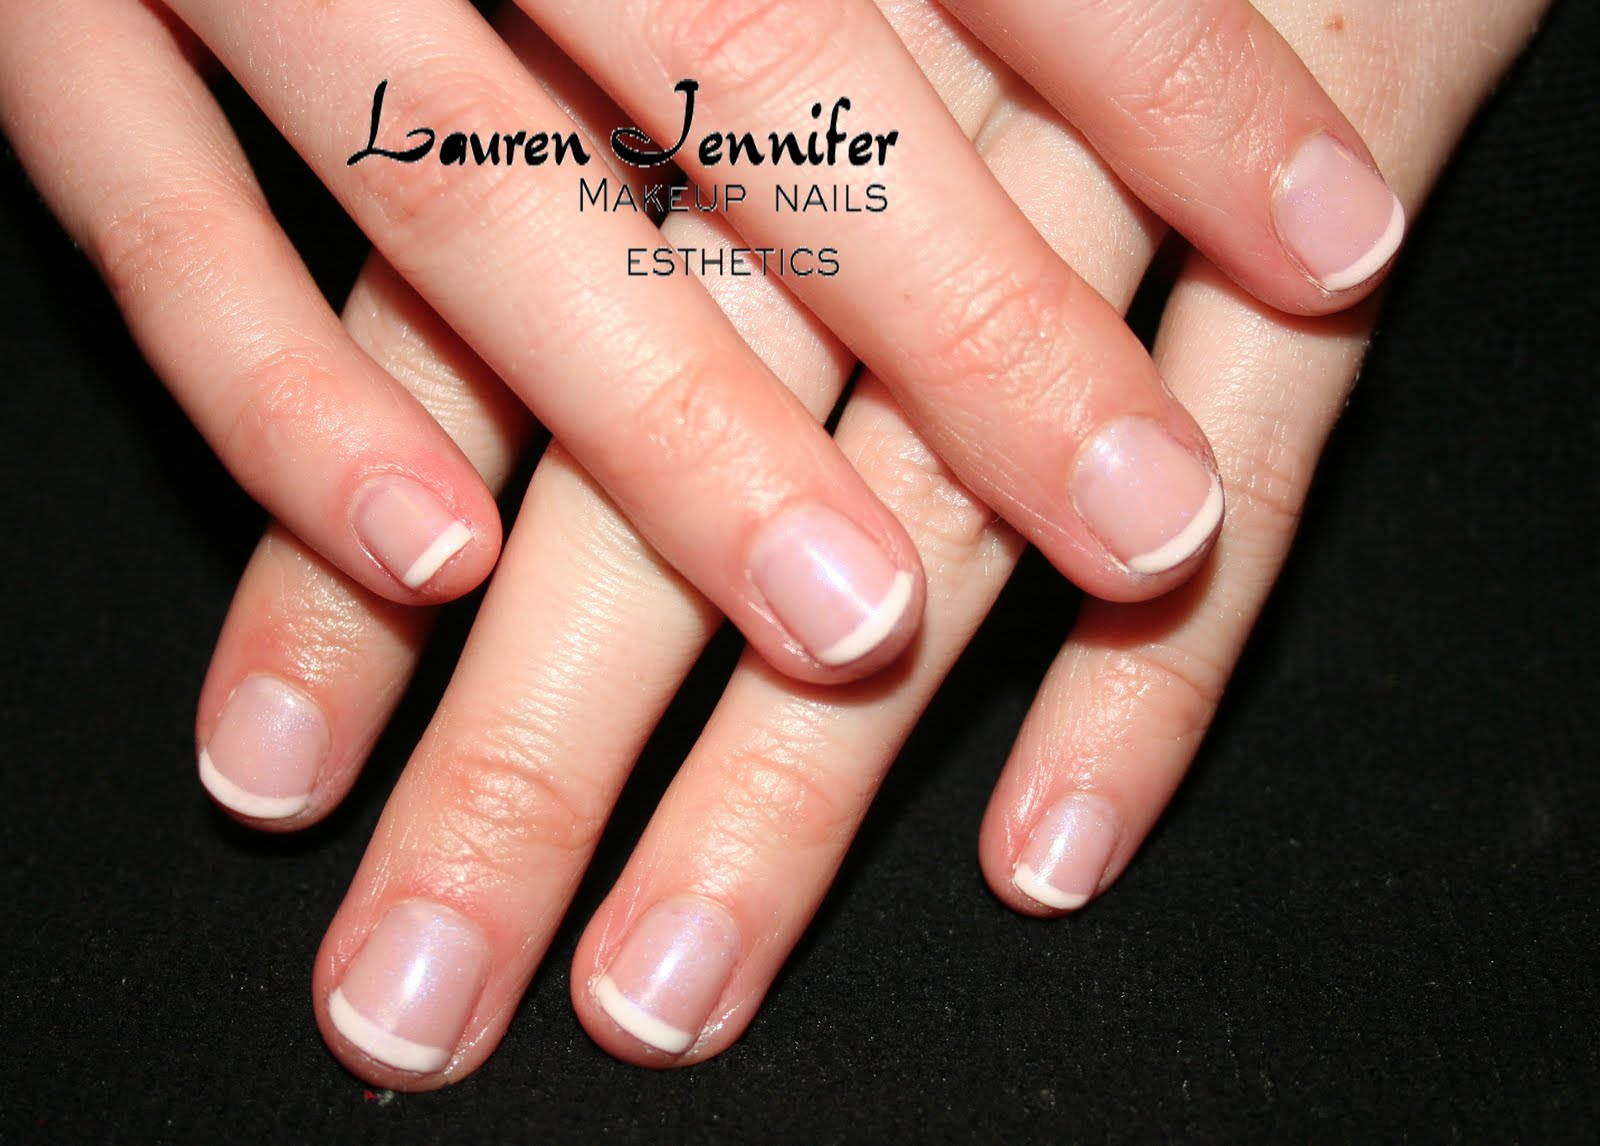 Lauren Jennifer In Style: Update: Shellac on day 14..Amazing